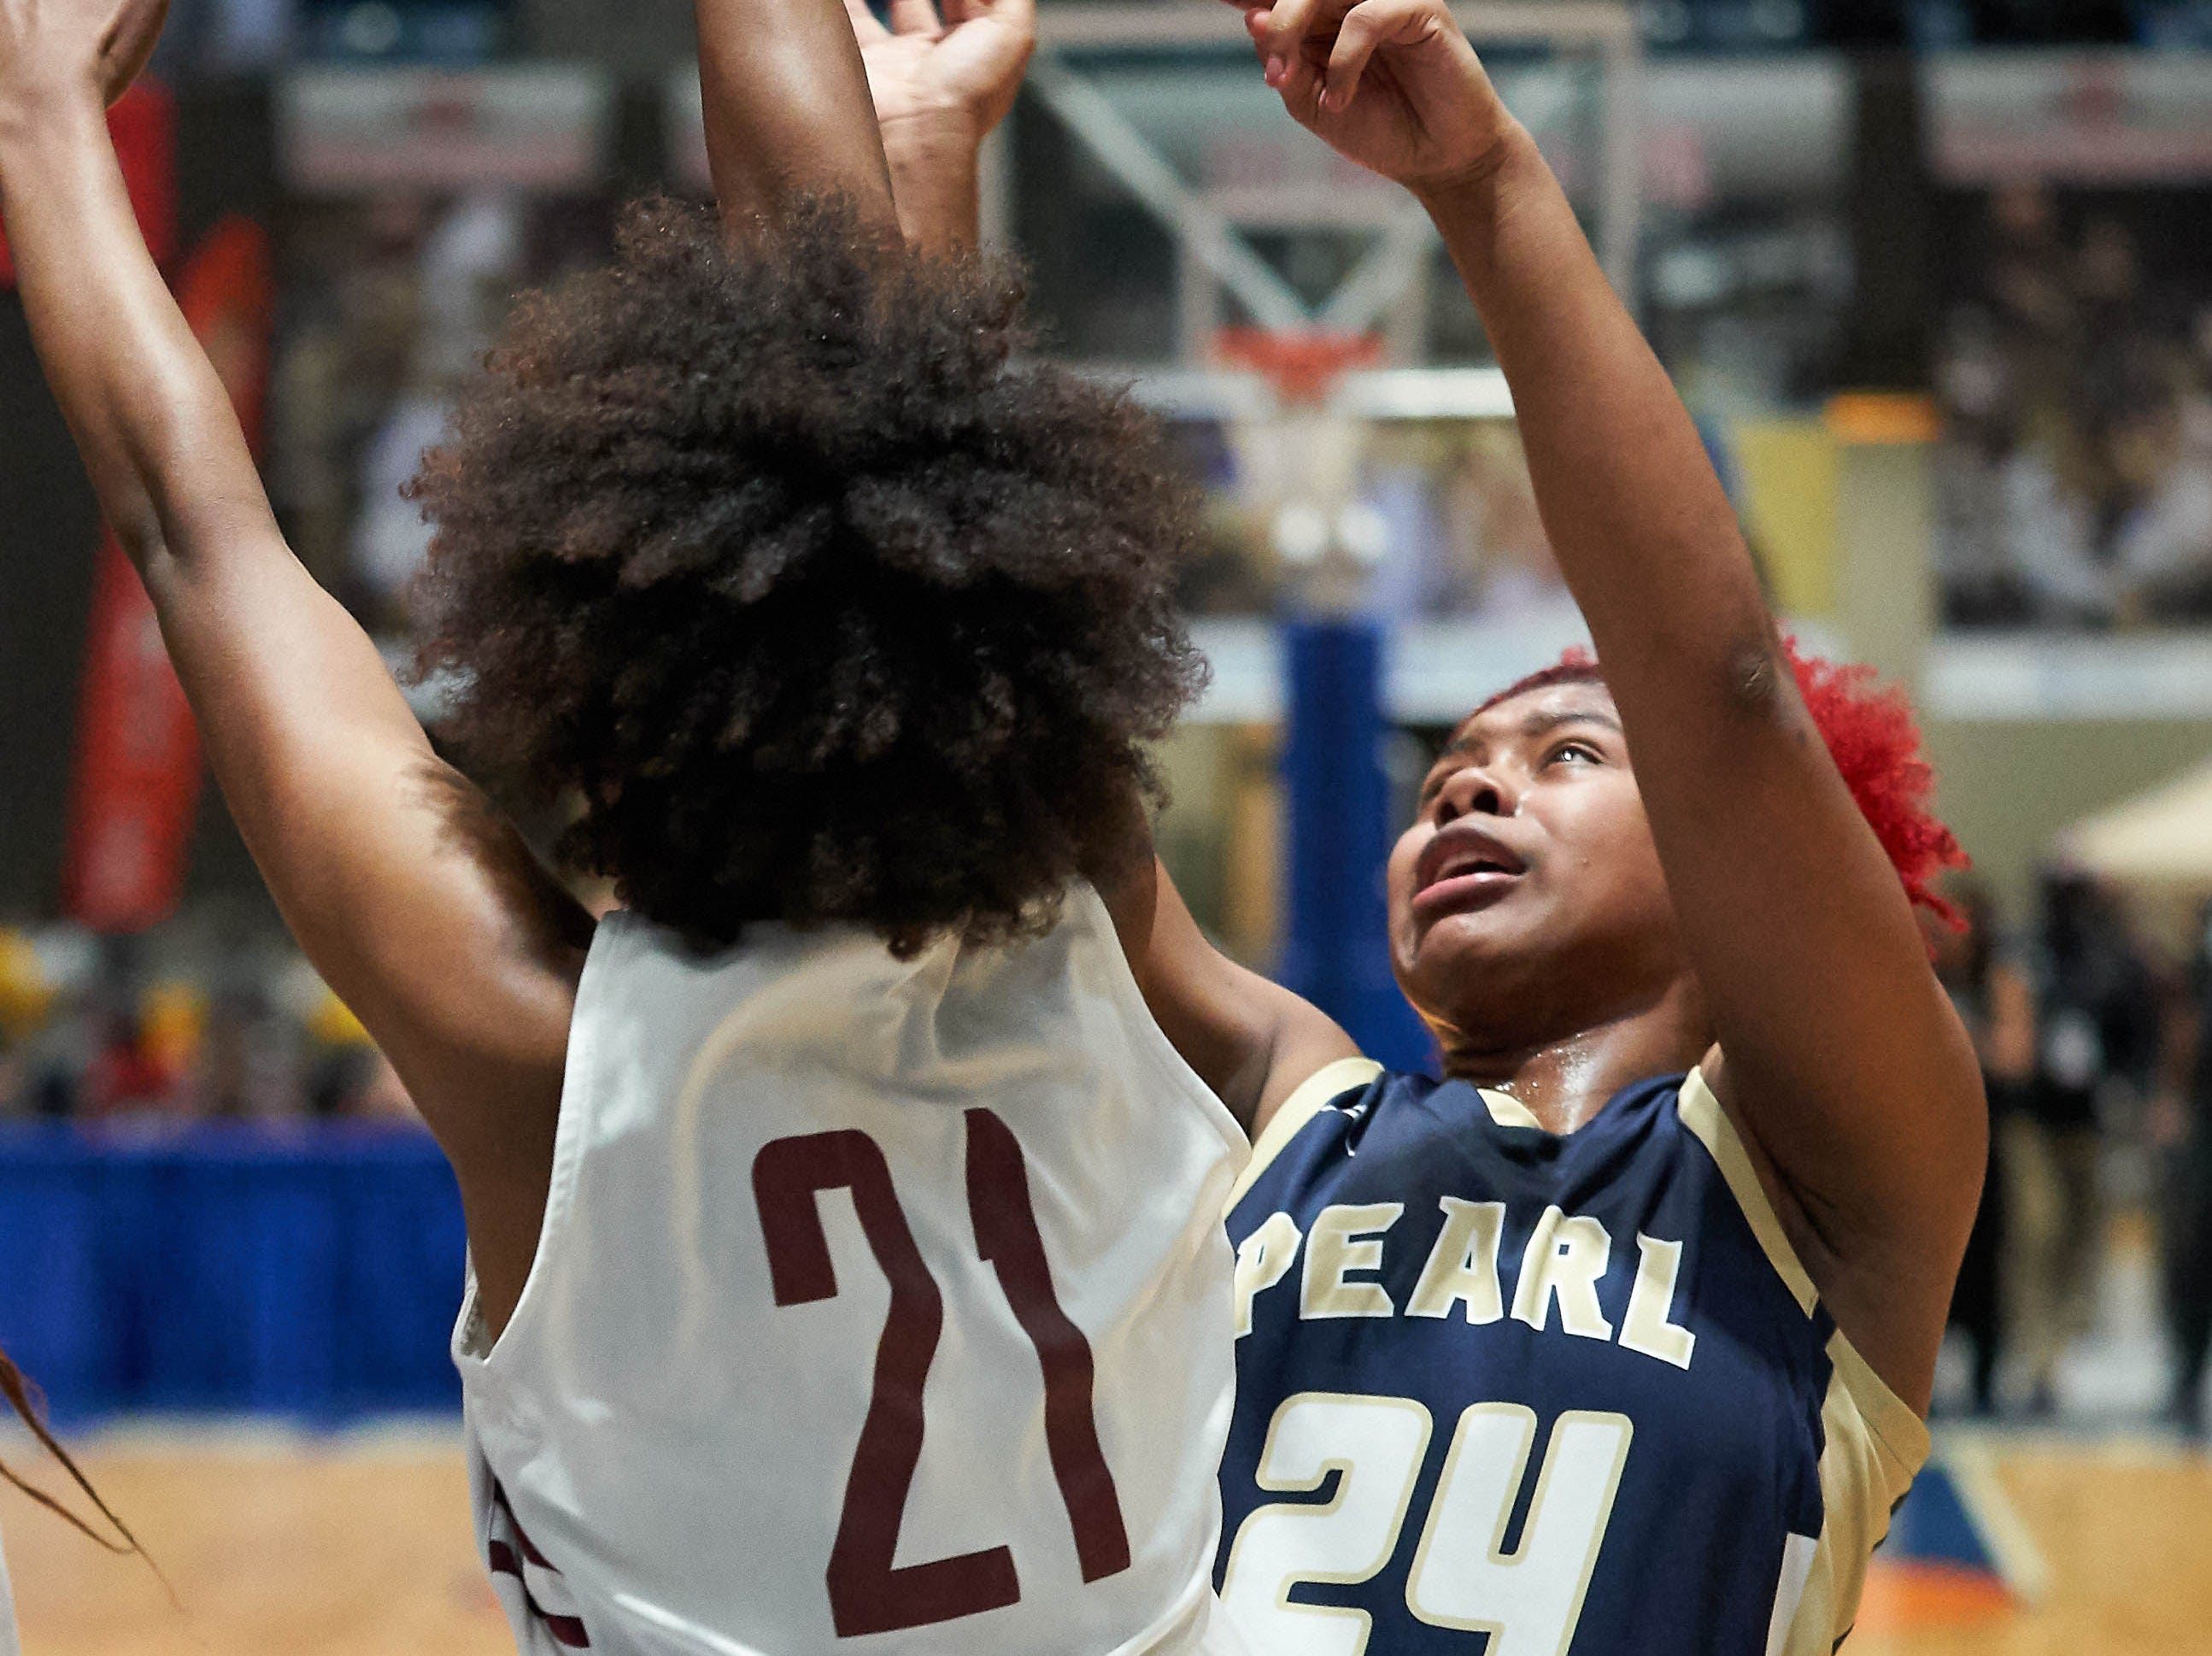 Pearl's Jade Miles (24) shoots against Terry's Ayani Cockerill (21)  during the MHSAA 6A Girls Basketball Championship Finals held at the Mississippi Coliseum in Jackson, MS, Saturday March 9th, 2019.(Bob Smith)